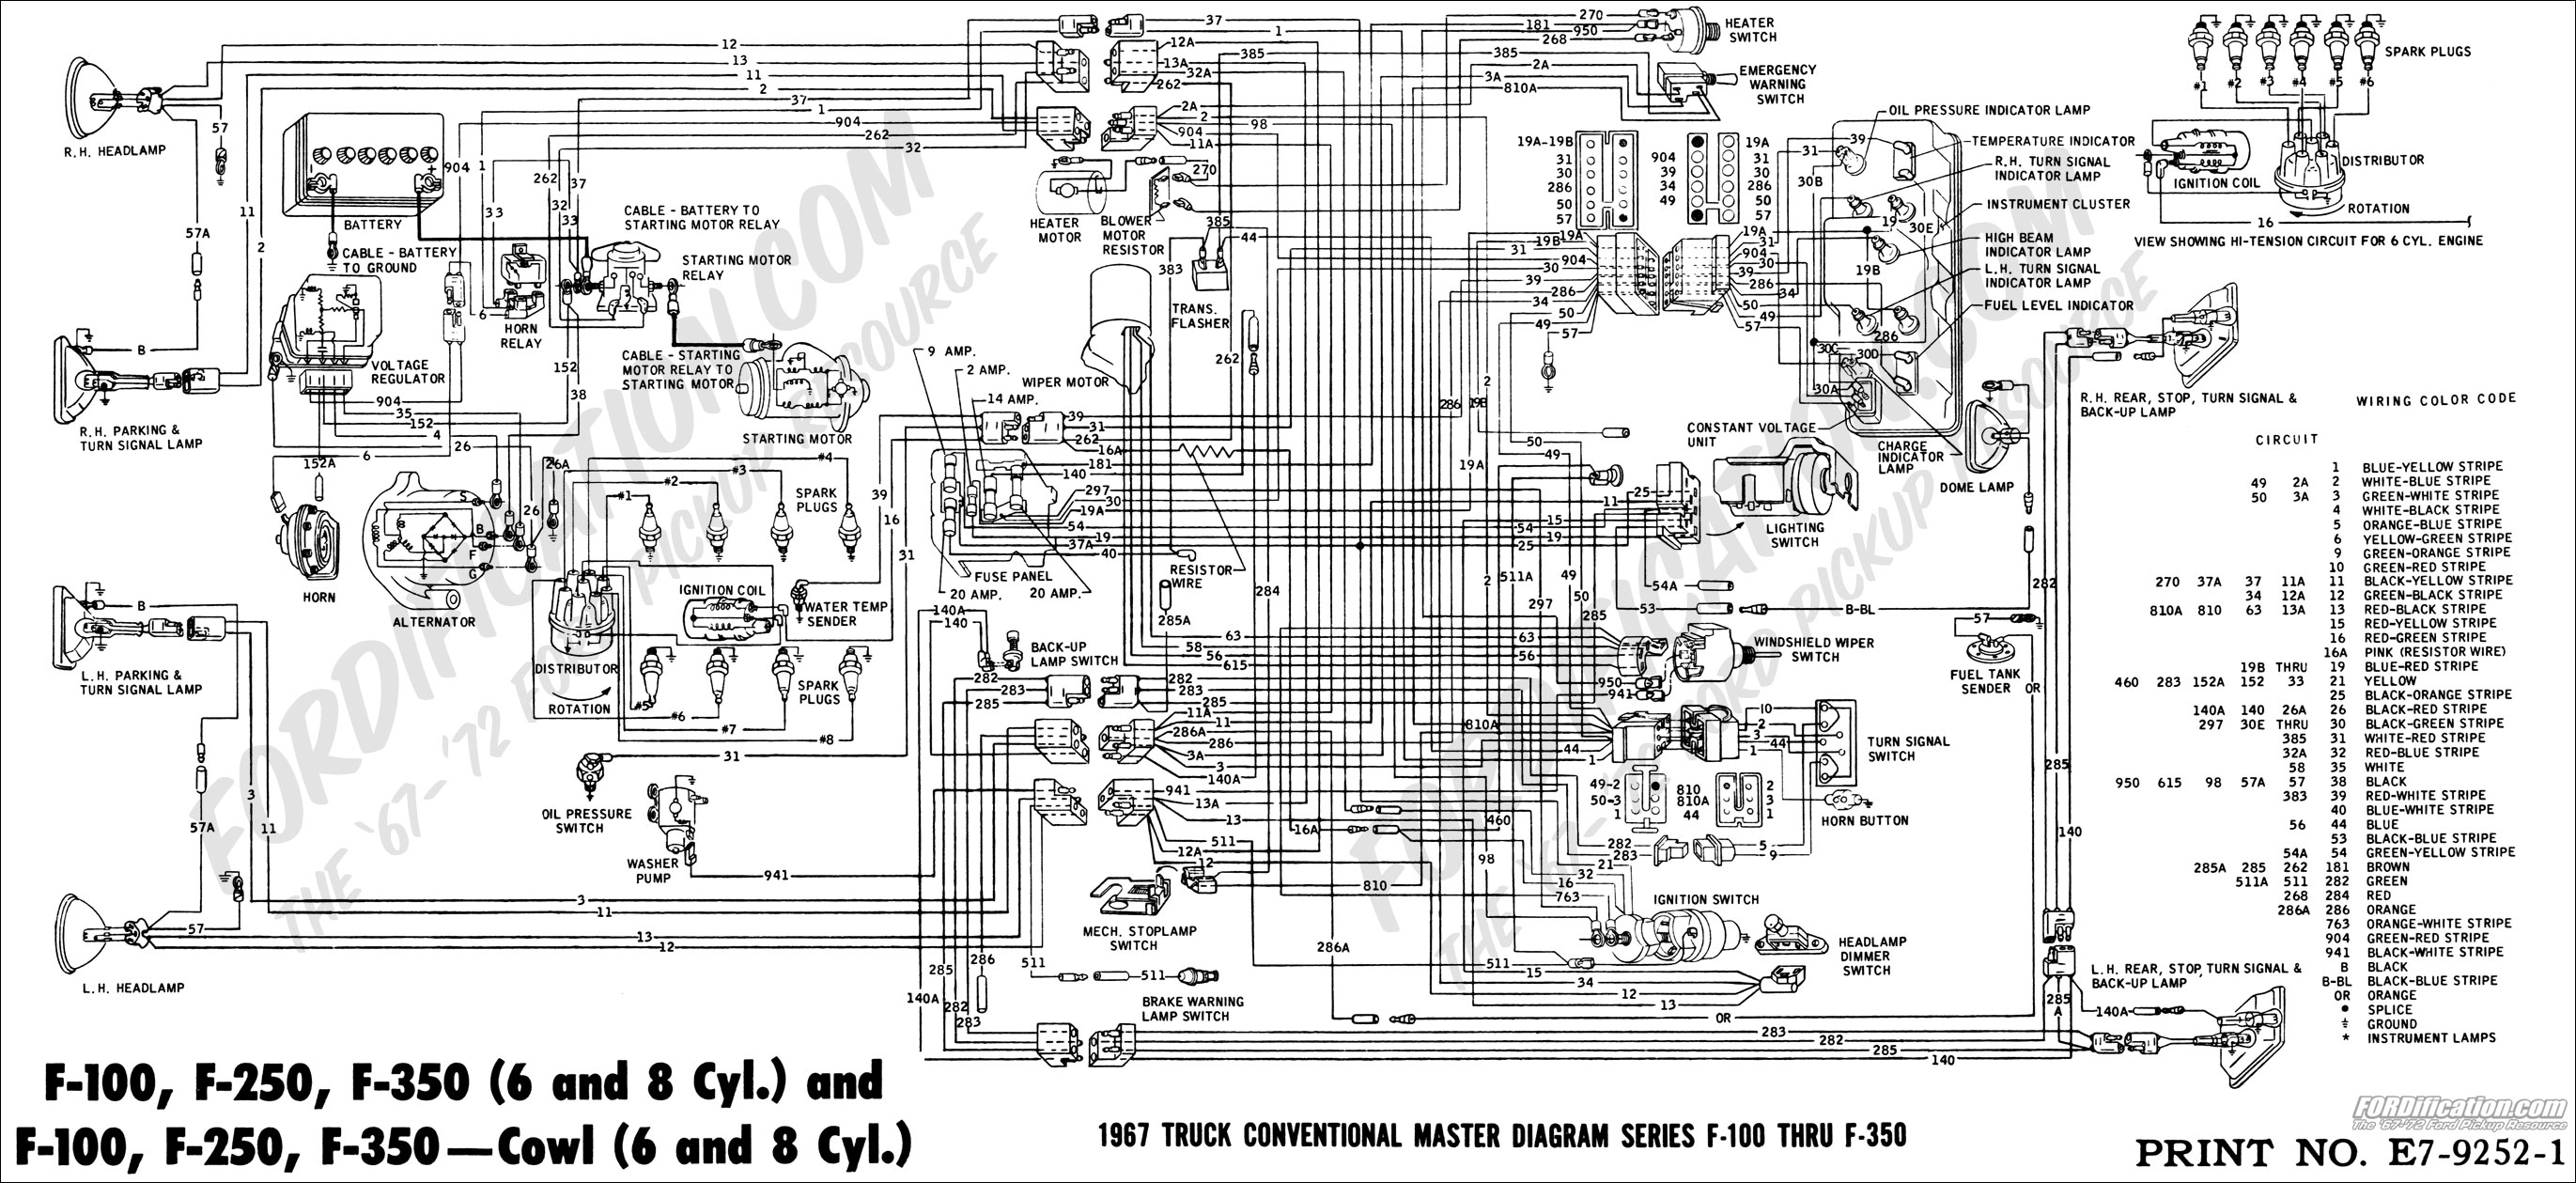 1963 ford f100 wiring diagram labeled of abdominal vasculature wire all data 2006 engine schema diagrams brakes